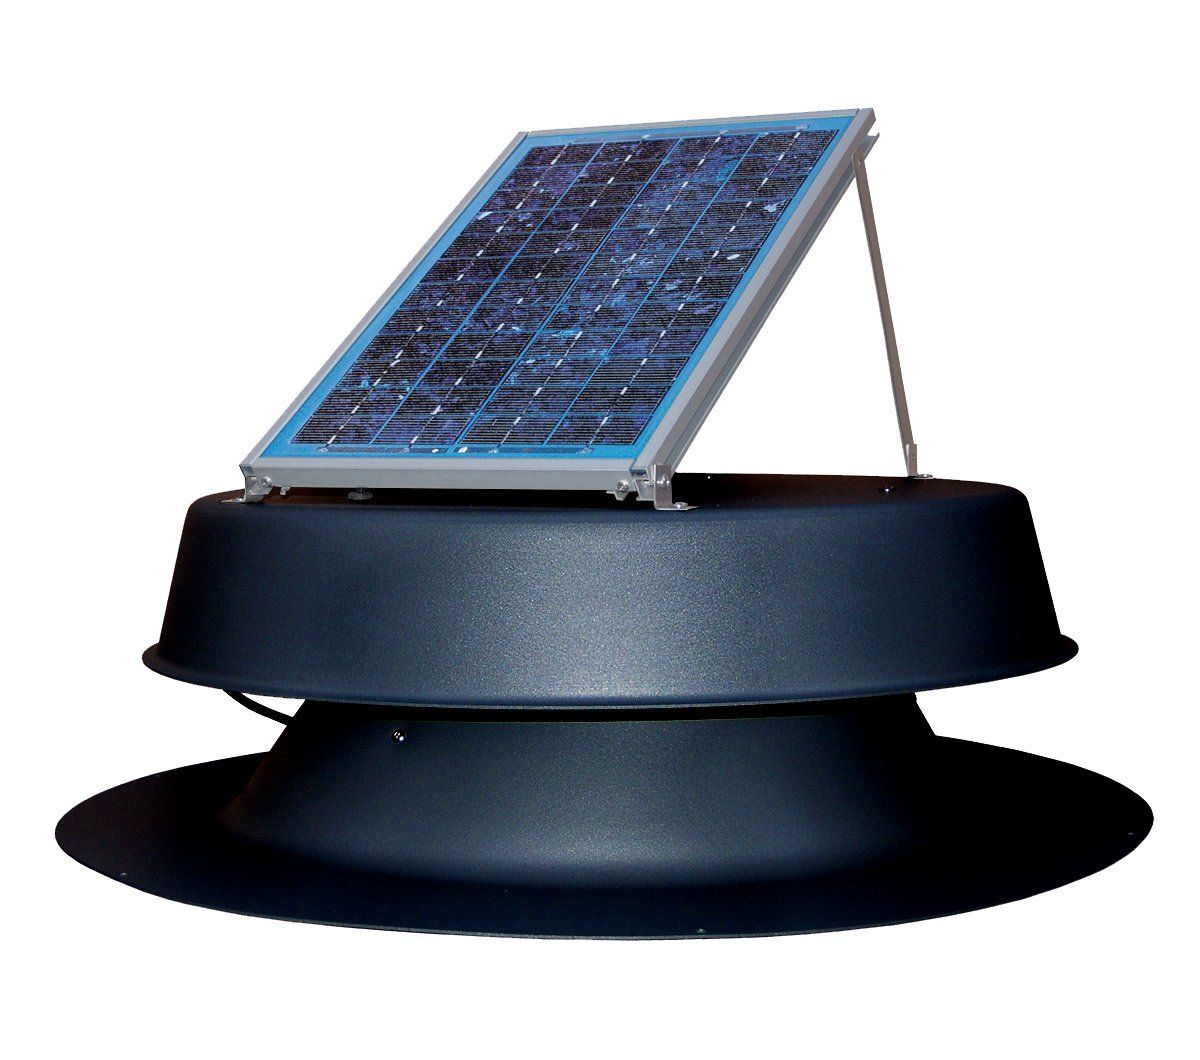 Solar Attic Fan 12 Watts 1200 Sq Ft Black To View Further For This Item Visit The Image Link Solar Energy Panels Best Solar Panels Solar Attic Fan